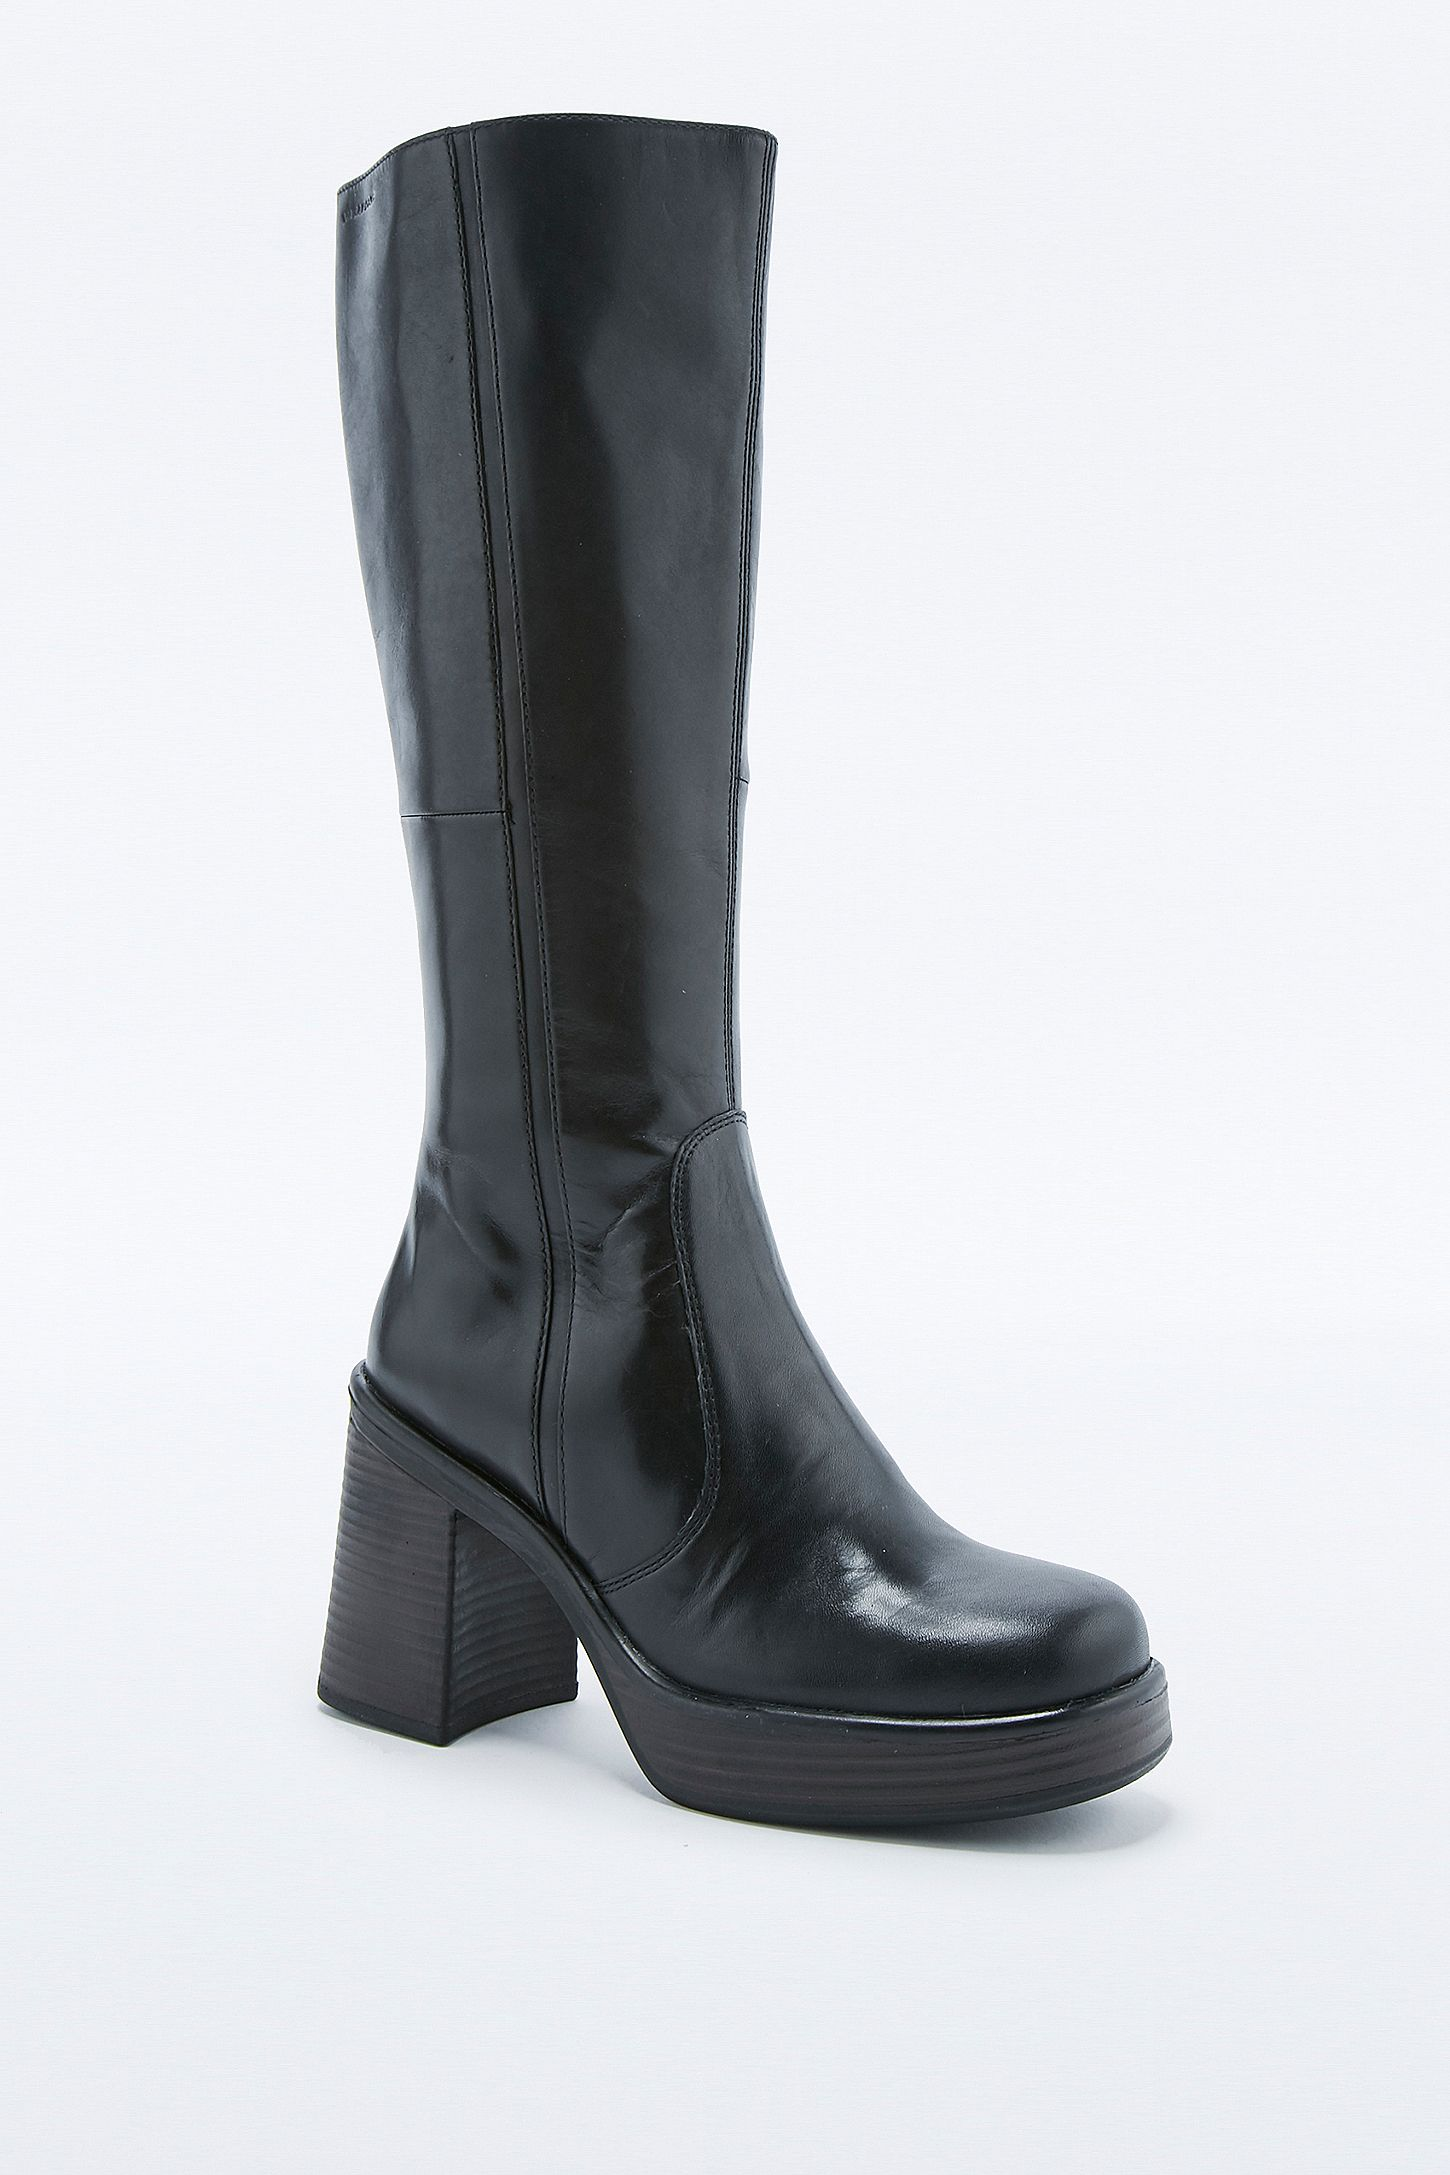 70799882f47 Vagabond Tyra Black Knee High Boots